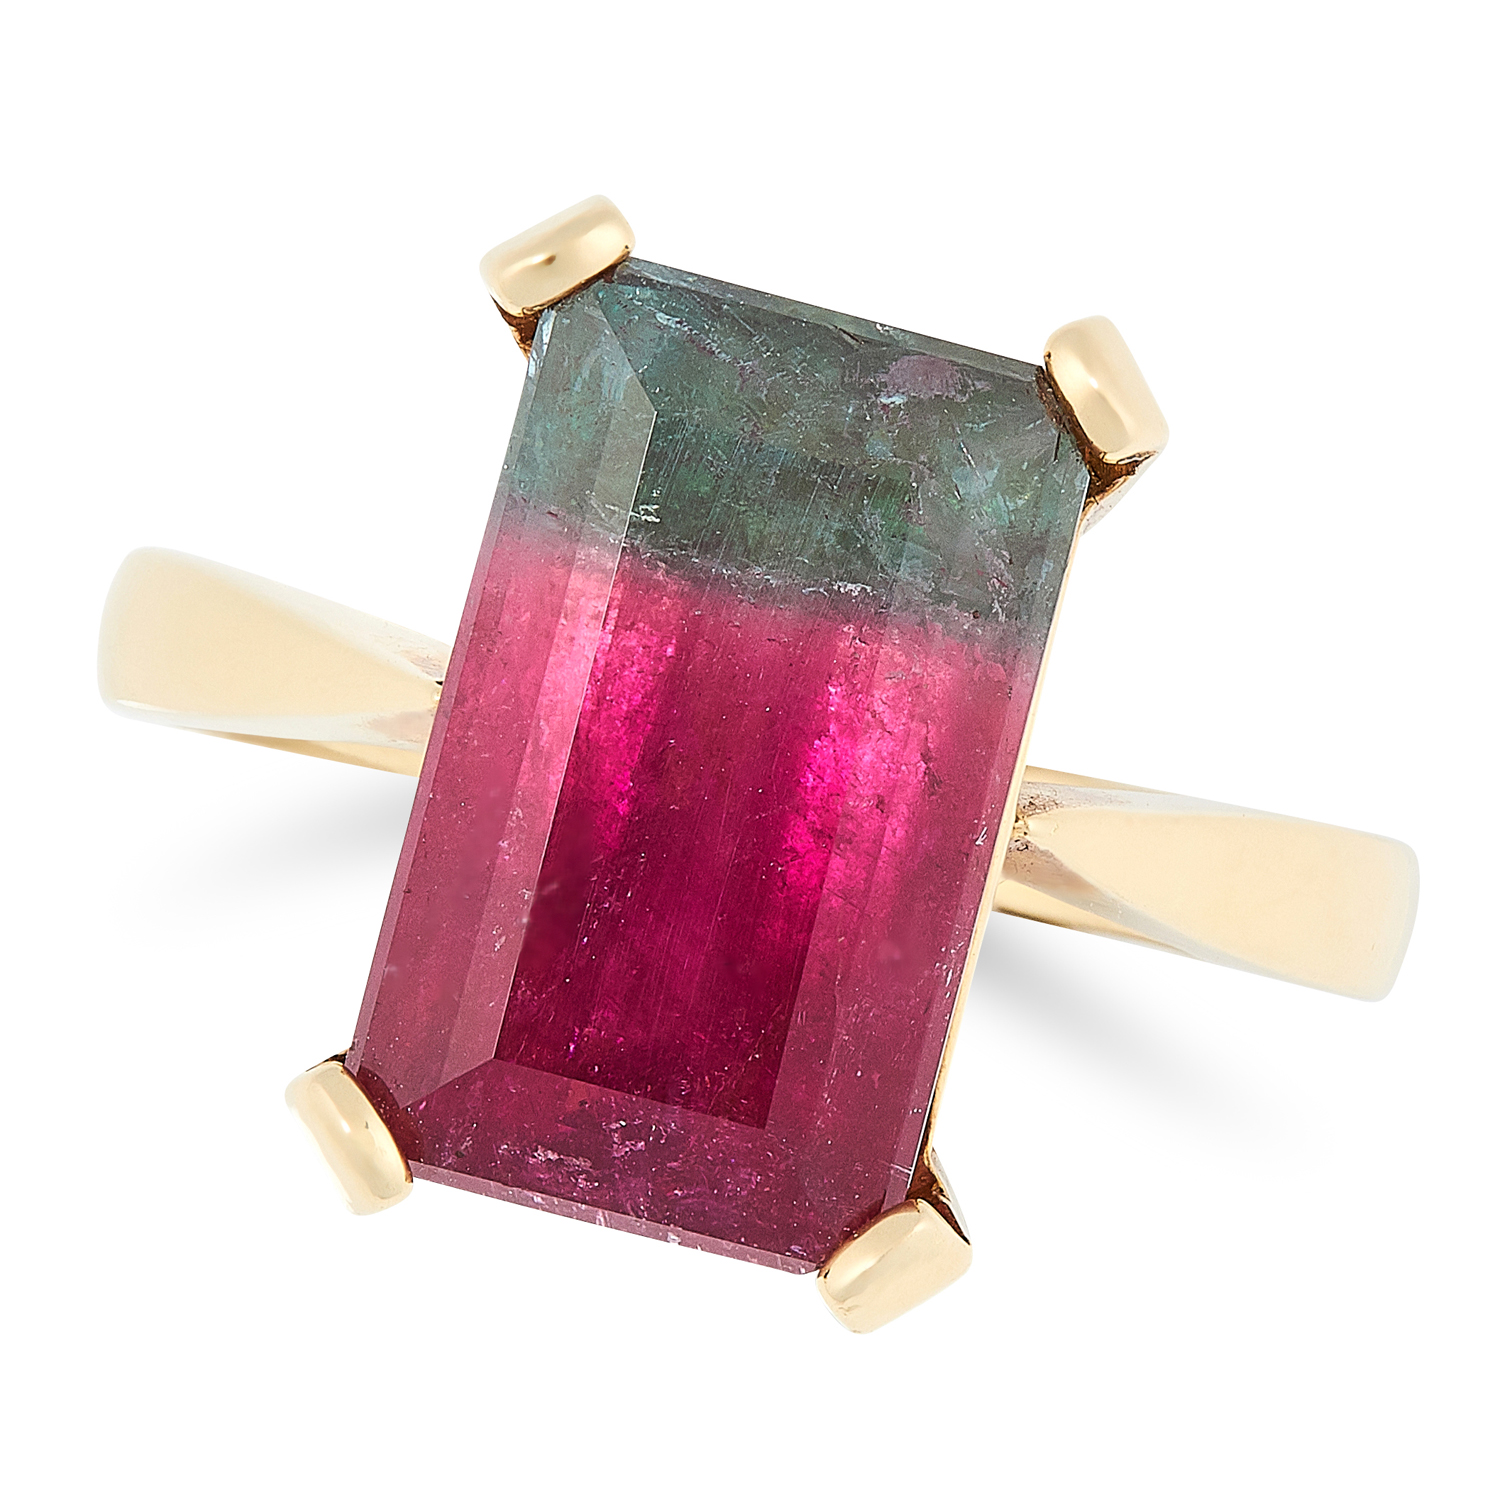 A WATERMELON TOURMALINE DRESS RING in 18ct yellow gold, set with an emerald cut watermelon